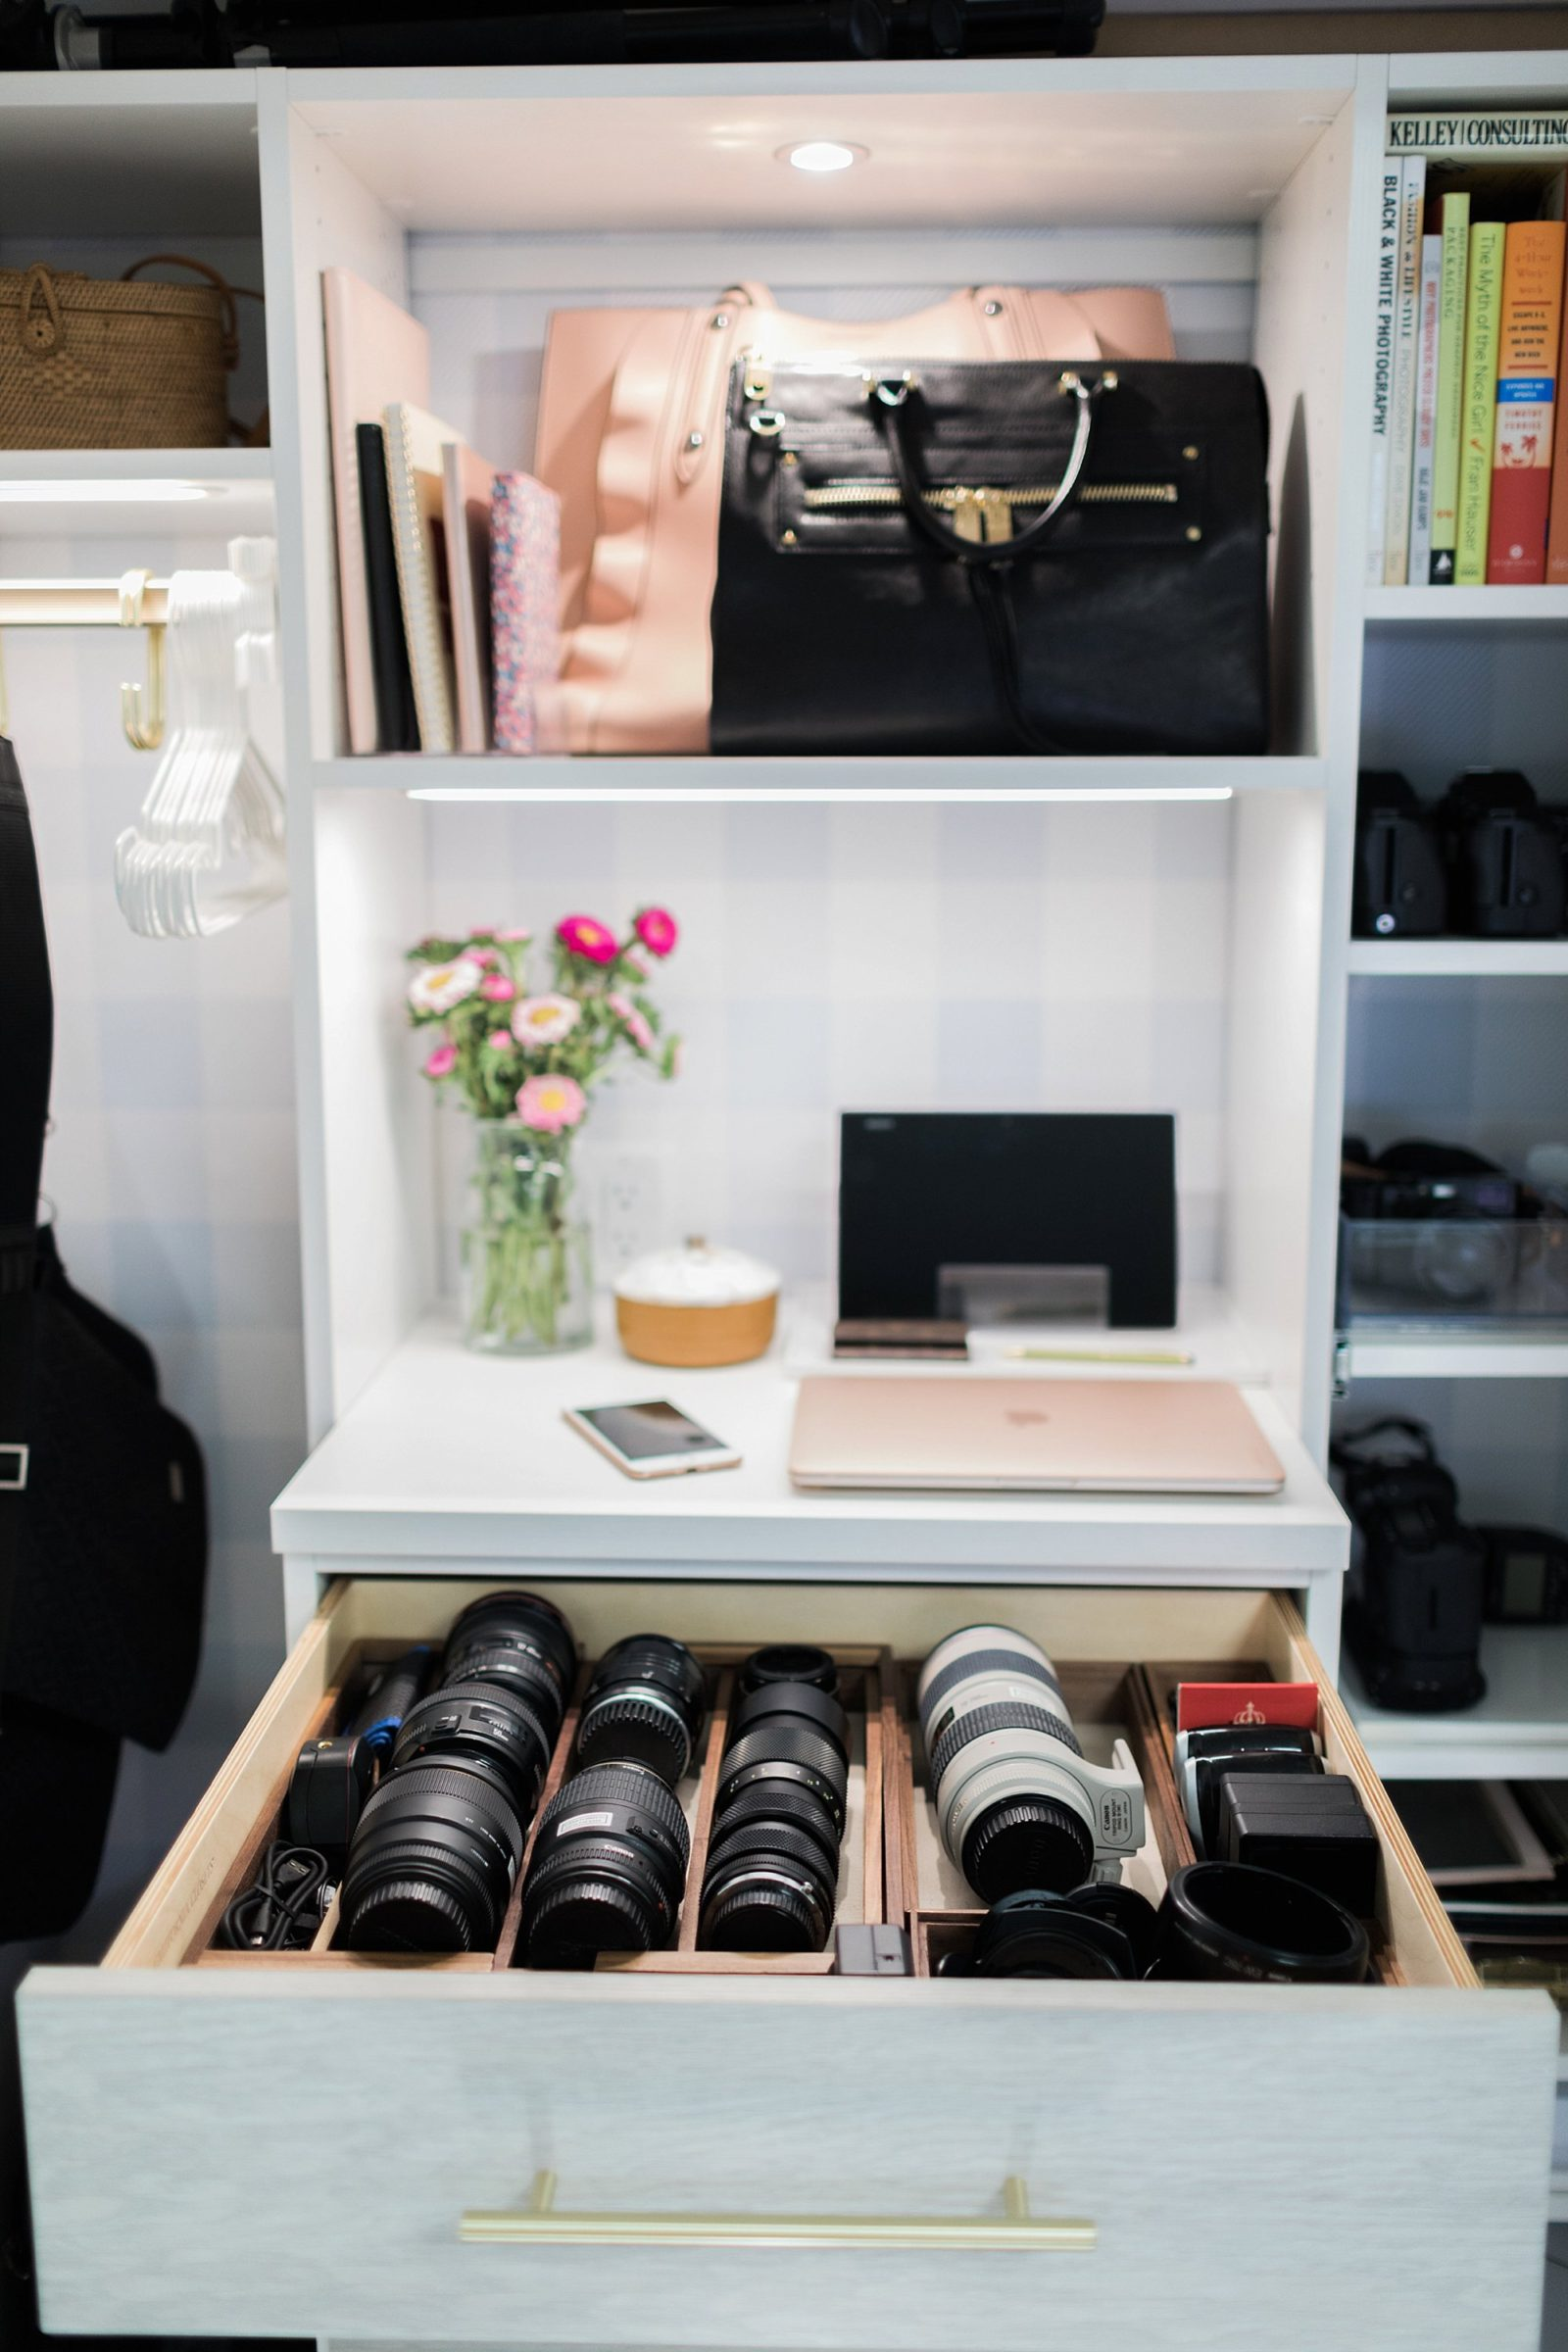 camera lens drawer lens organization blogger photographer office closet and how to organize and store camera lenses